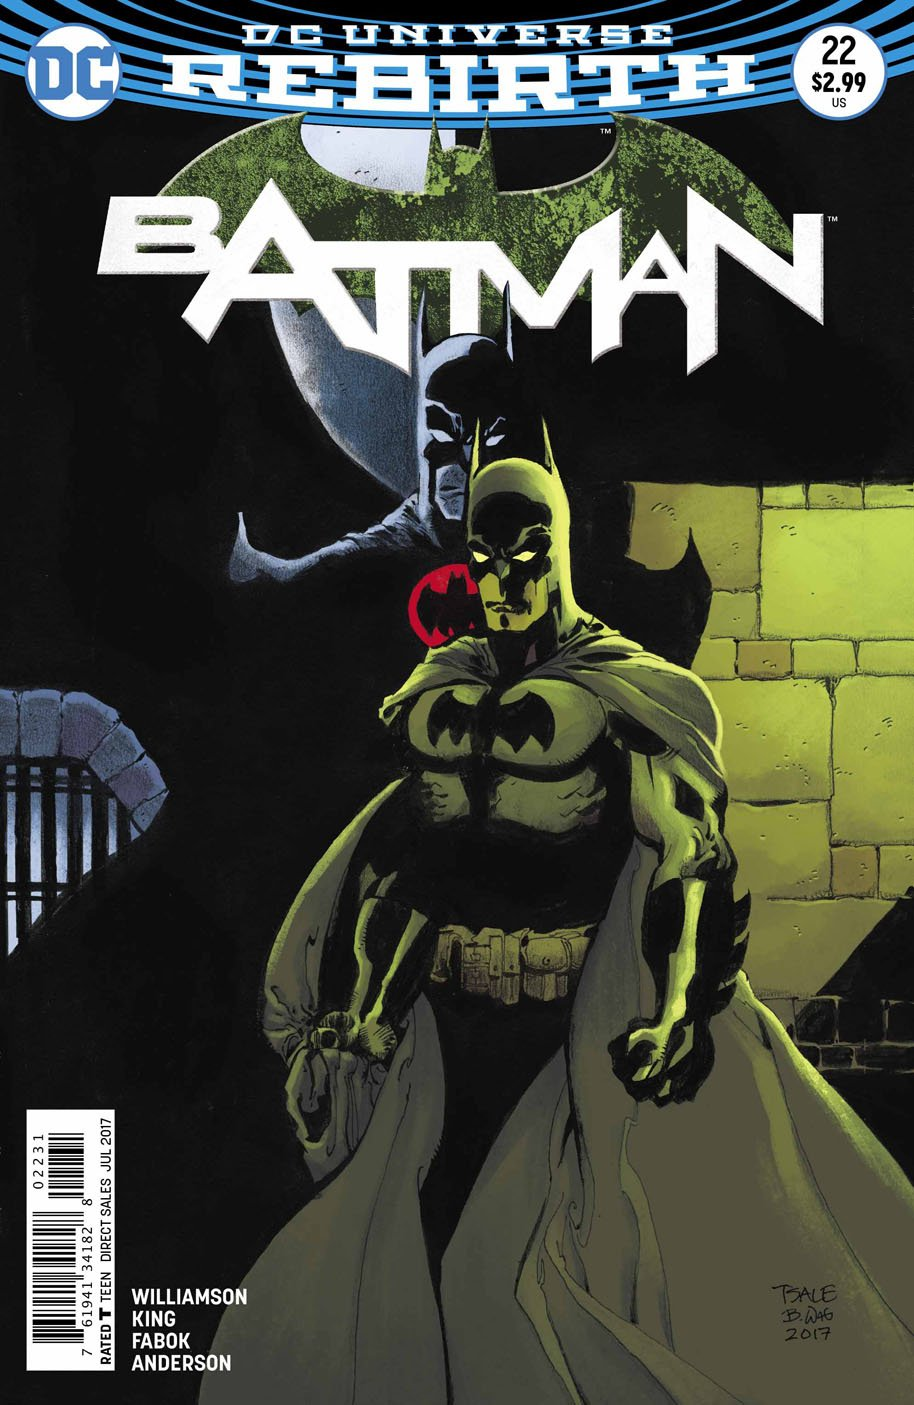 Batman #22 Review